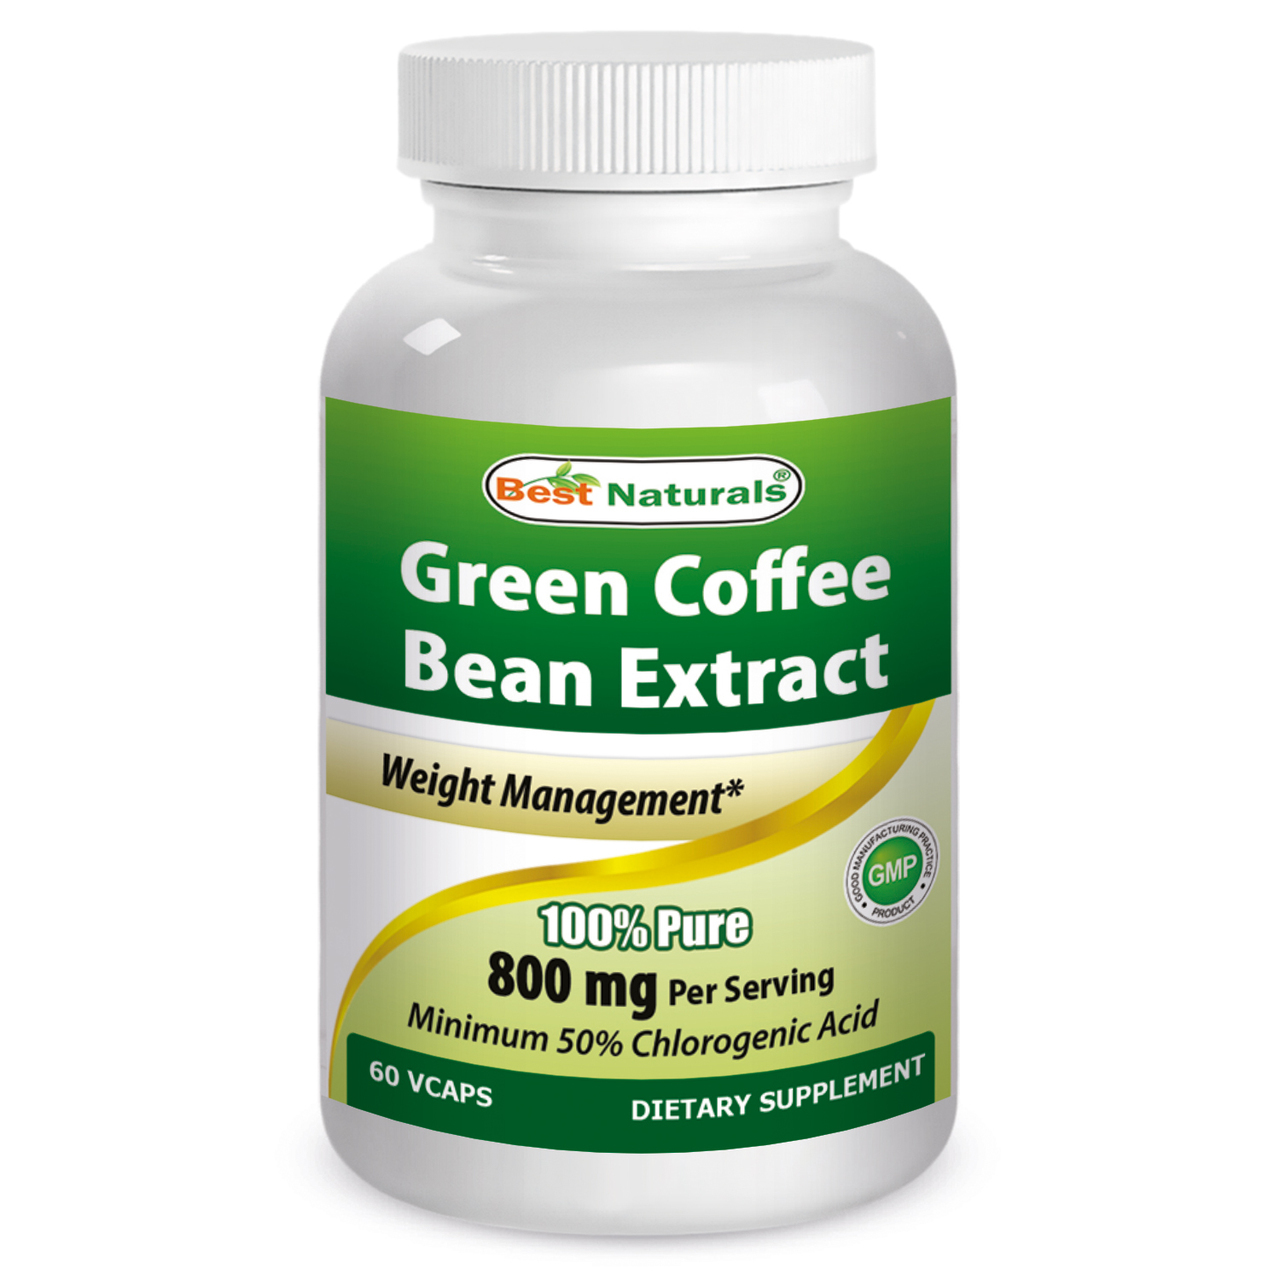 Best Naturals Green Coffee Bean Extract 800mg 60 Vcaps